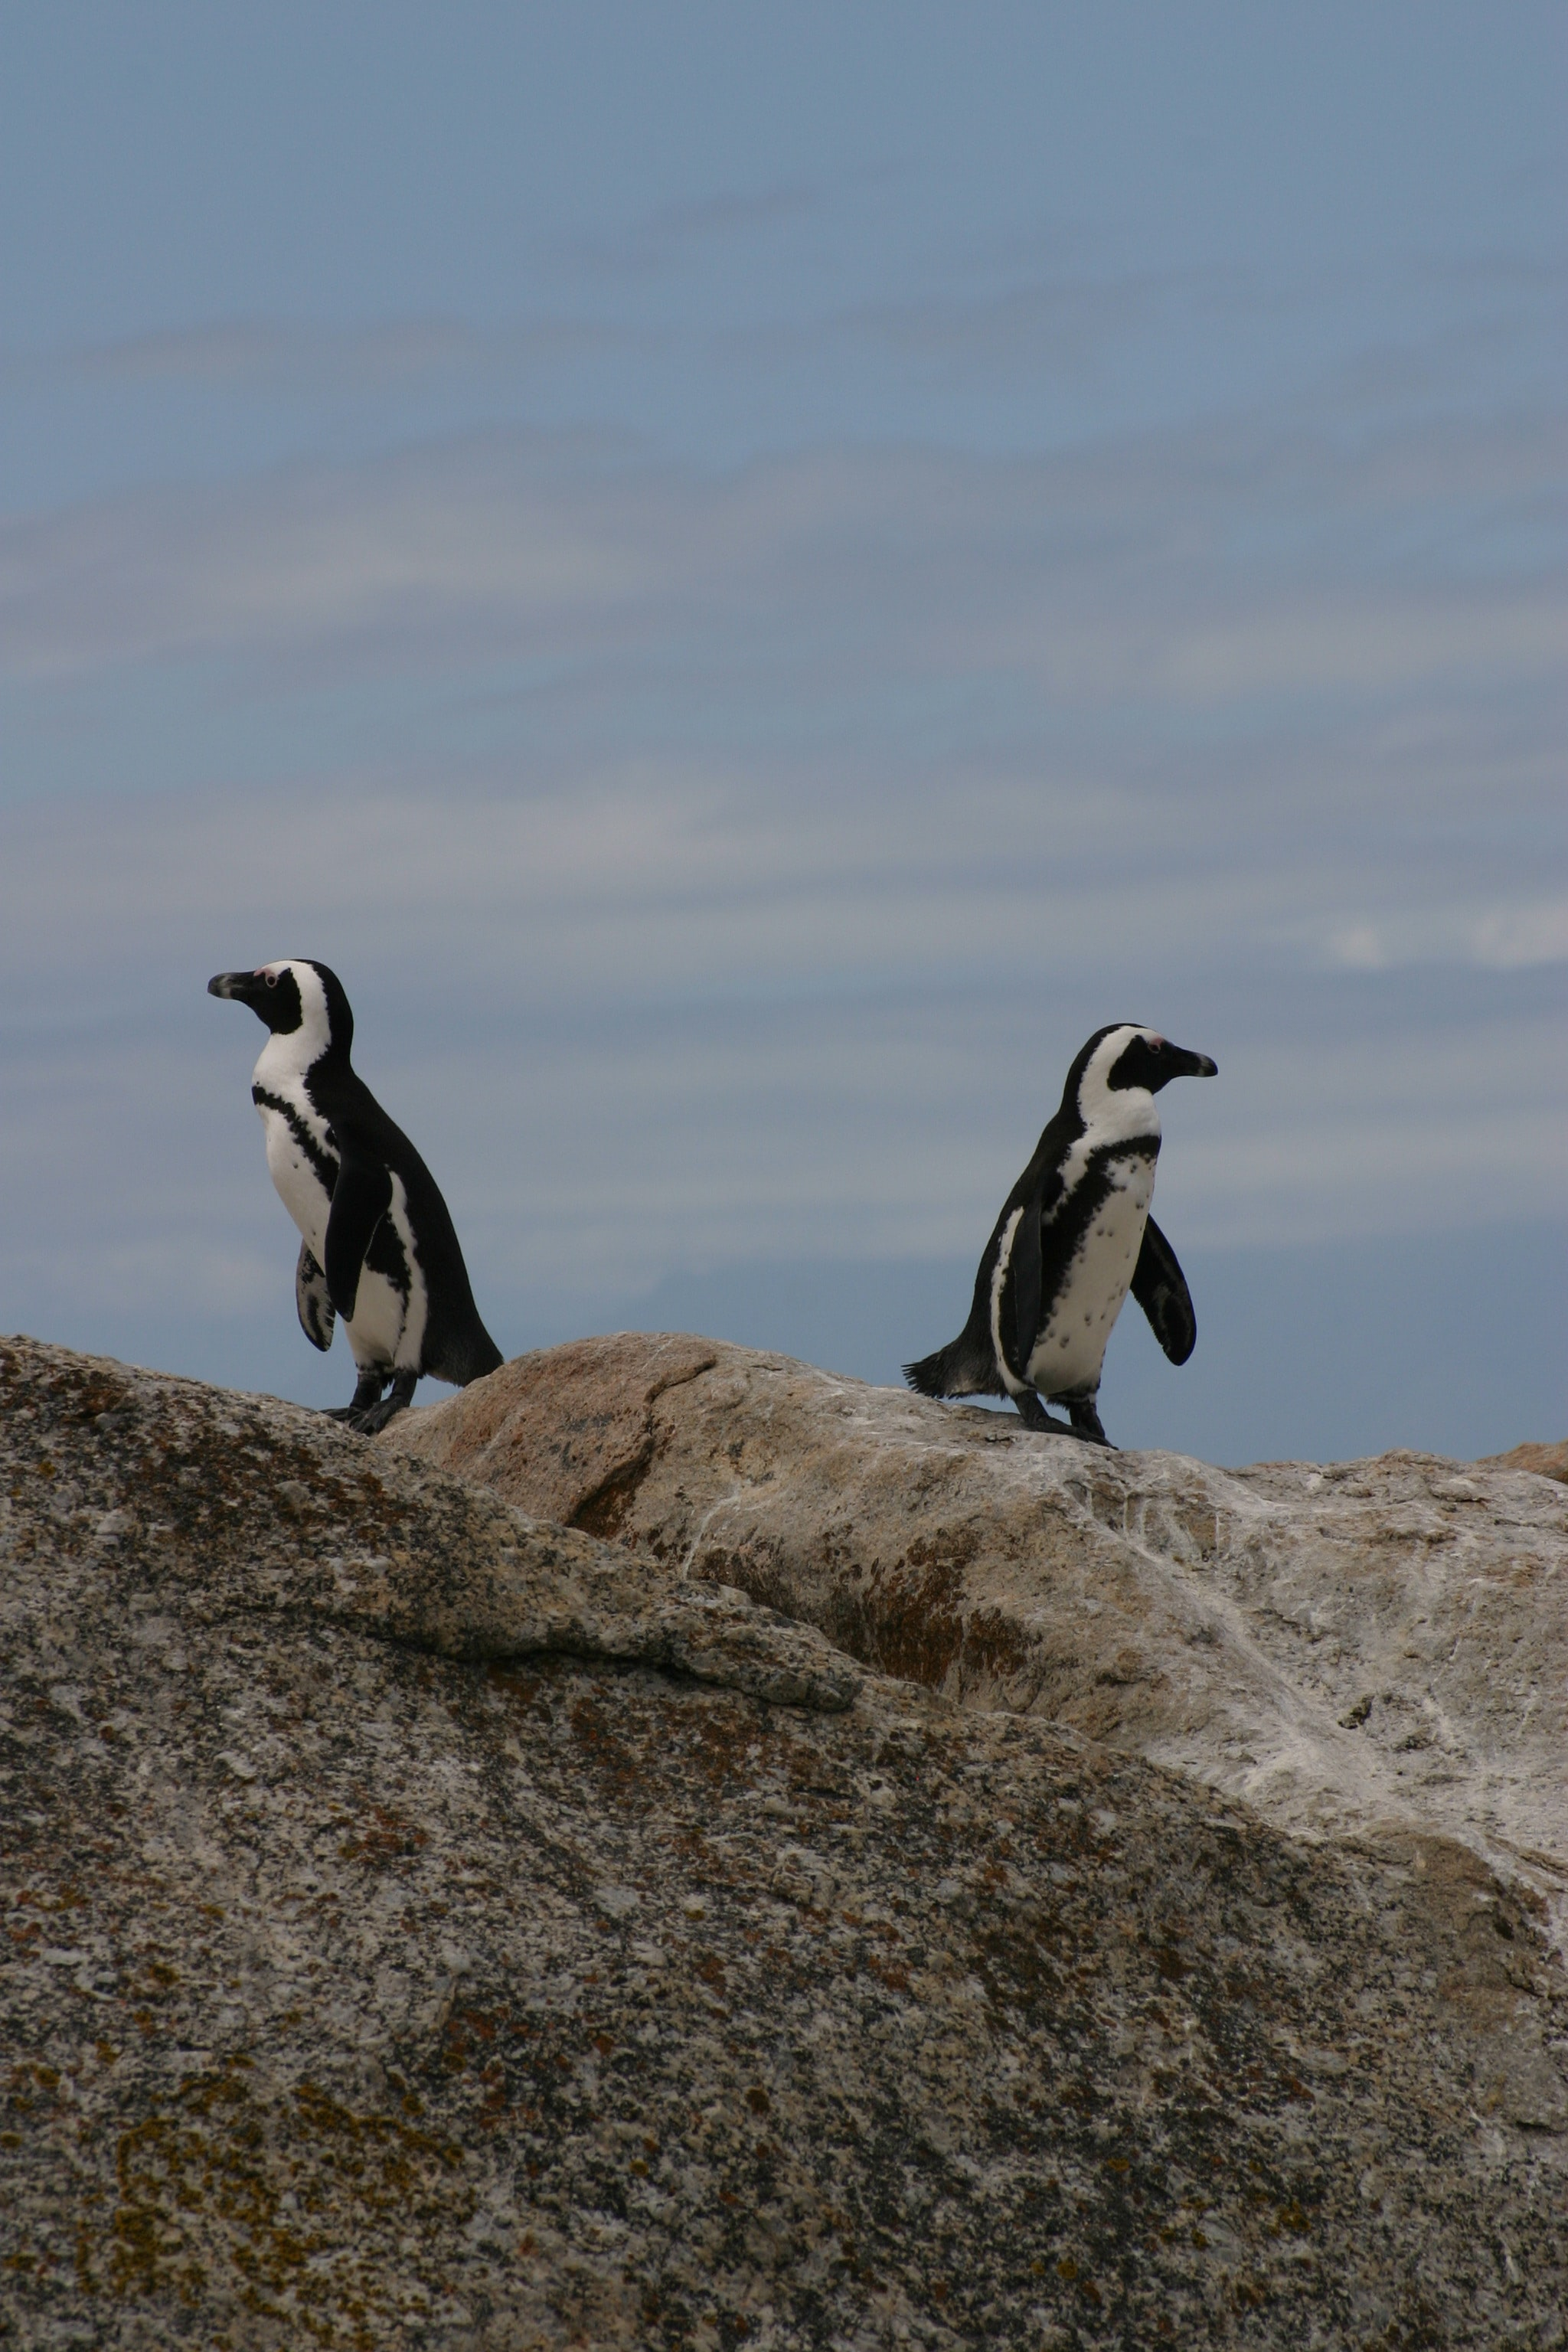 Penguins face opposite directions atop a rock in South Africa